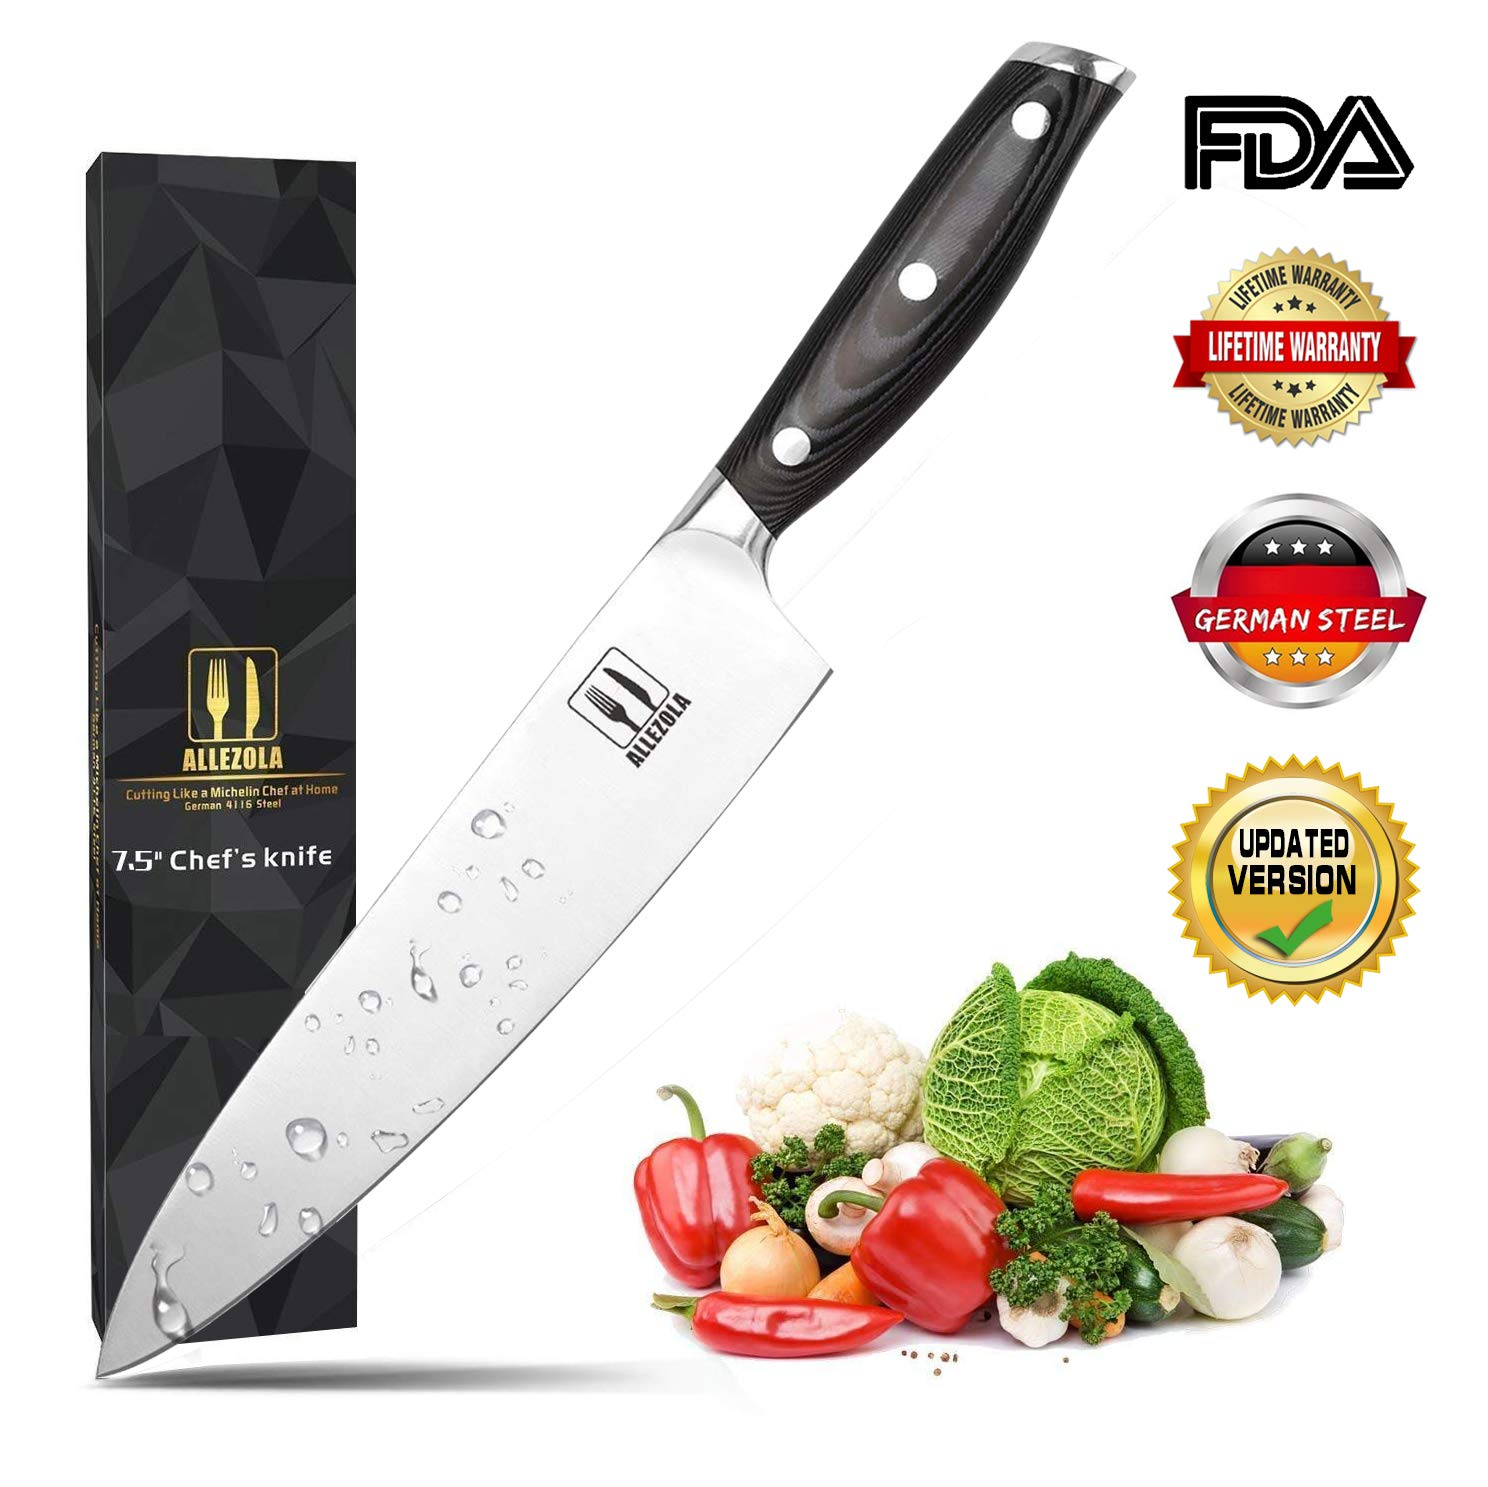 Allezola 7.5 Inch Professional Chef Knife Kitchen Knives German High Carbon Stainless Steel with Ergonomic Handle, Cooking knife for Home and Restaurant